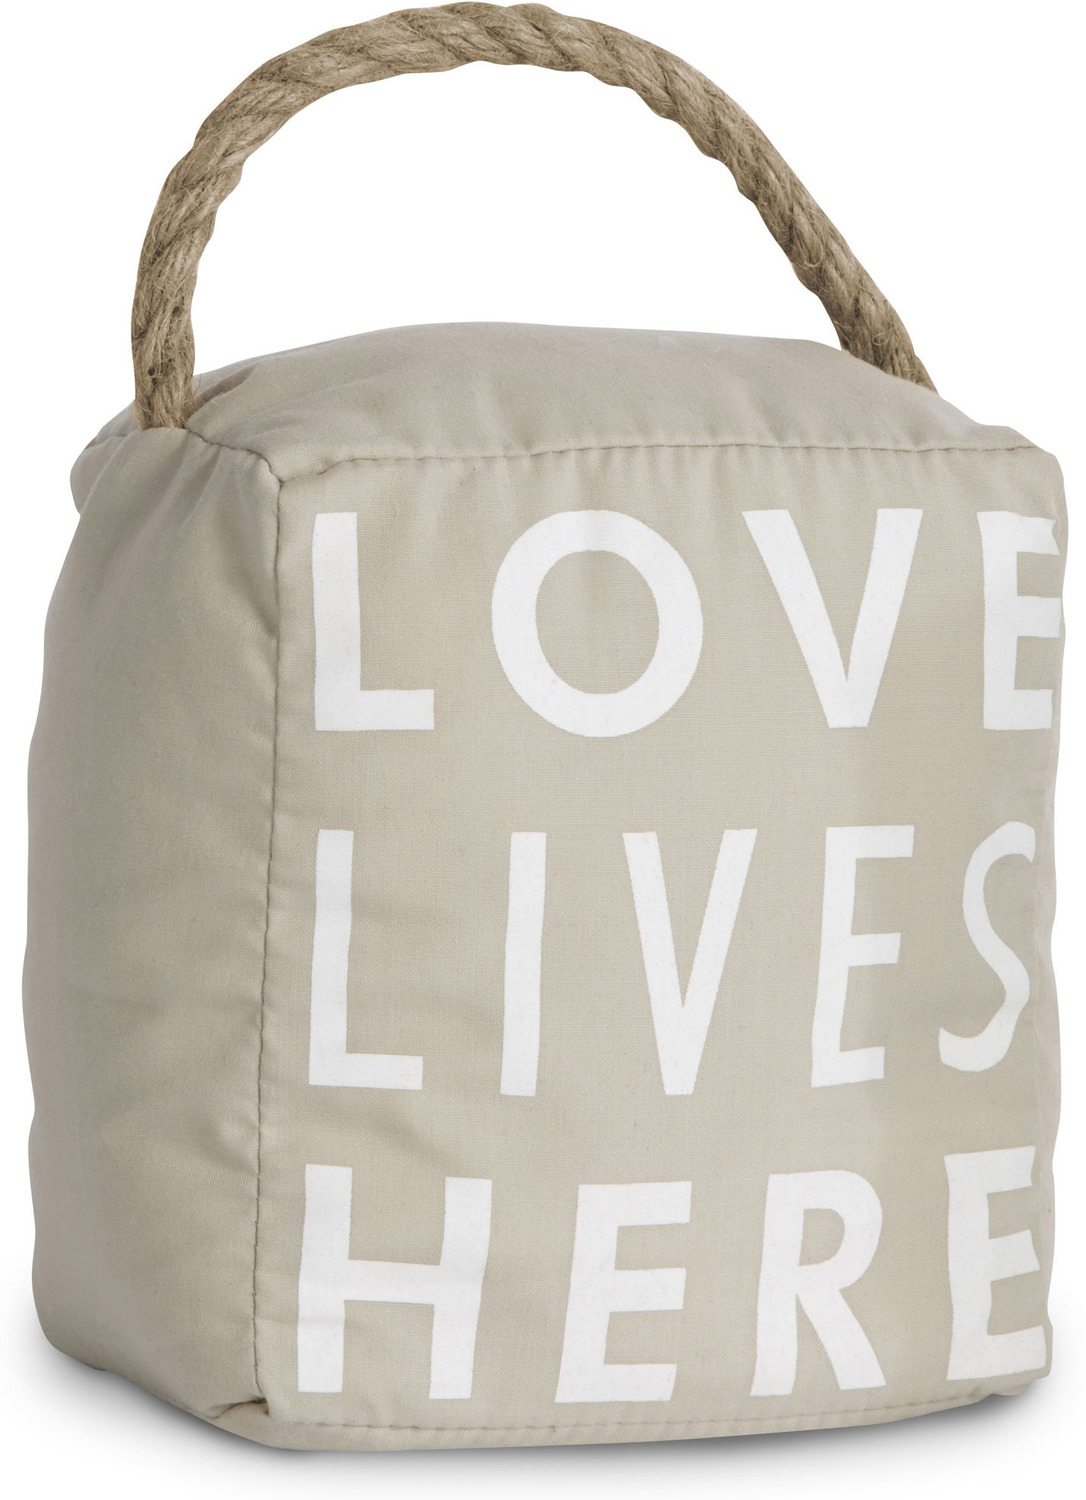 Love Lives Here by Open Door Decor - <em>Love</em> - Simple & Functional Door Stopper -